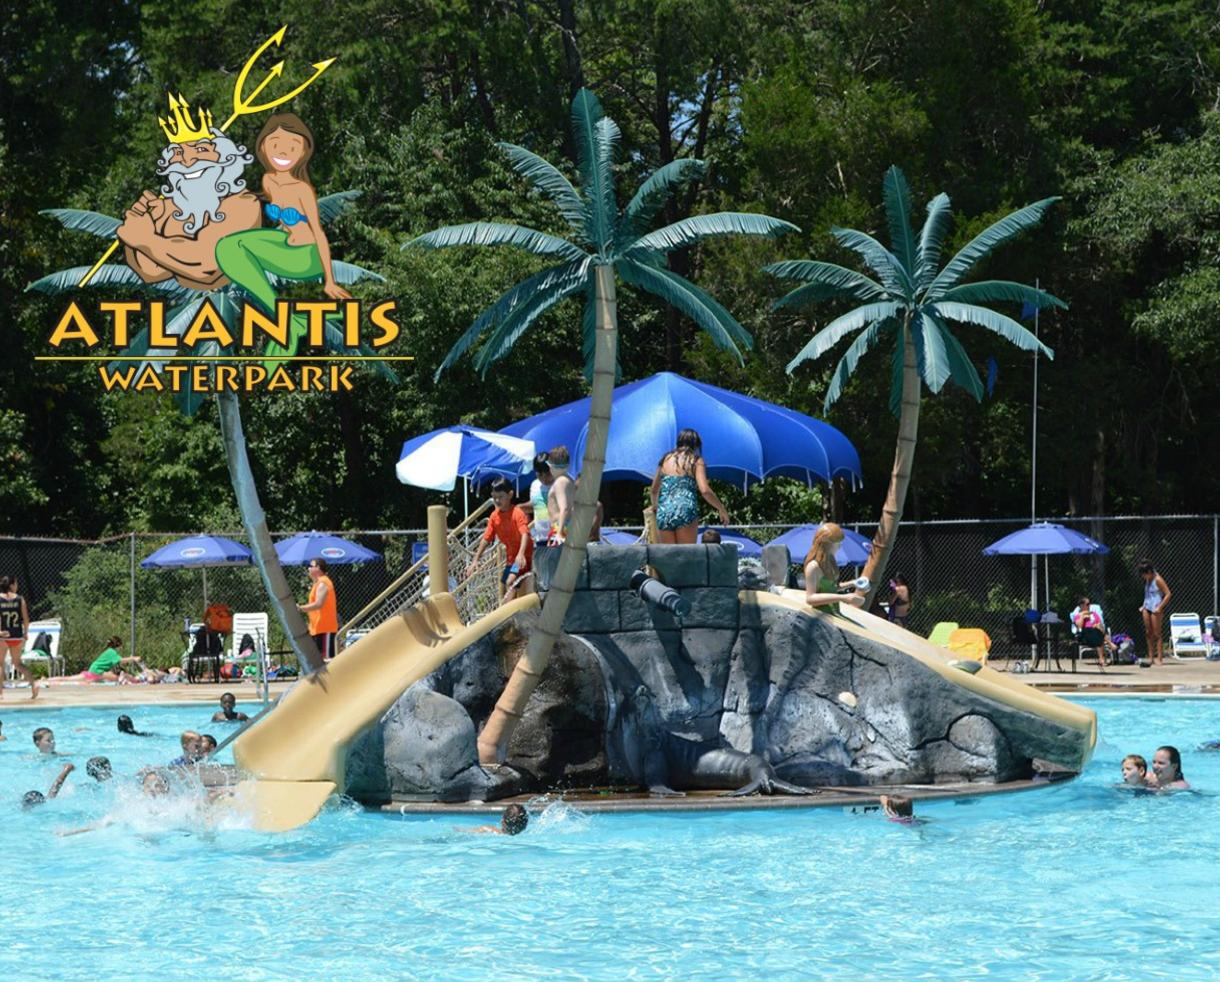 Atlantis Waterpark Admission